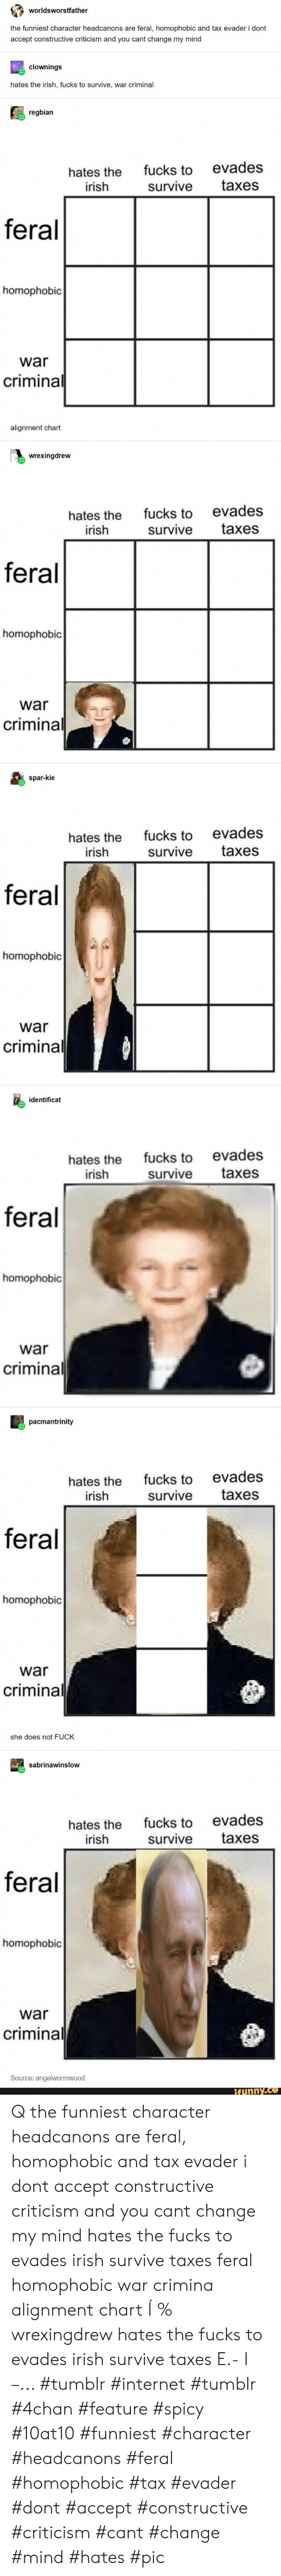 4chan, Internet, and Irish: worldsworstfather  the funniest character headcanons are feral, homophobic and tax evader i dont  accept constructive criticism and you cant change my mind  clownings  hates the irish, fucks to survive, war criminal  regbian  evades  fucks to  hates the  irish  taxes  survive  feral  homophobic  war  criminal  alignment chart  wrexingdrew  fucks to evades  hates the  irish  taxes  survive  feral  homophobic  war  criminal  spar-kie  fucks to evades  survive  hates the  irish  taxes  feral  homophobic  war  criminal  identificat  fucks to evades  hates the  irish  taxes  survive  feral  homophobic  war  criminal  pacmantrinity  fucks to evades  survive  hates the  irish  taxes  feral  homophobic  war  criminal  she does not FUCK  sabrinawinslow  fucks to evades  hates the  irish  taxes  survive  feral  homophobic  war  criminal  Source: angelwormwood  ifunny.co Q the funniest character headcanons are feral, homophobic and tax evader i dont accept constructive criticism and you cant change my mind hates the fucks to evades irish survive taxes feral homophobic war crimina alignment chart Í % wrexingdrew hates the fucks to evades irish survive taxes E.- I –... #tumblr #internet #tumblr #4chan #feature #spicy #10at10 #funniest #character #headcanons #feral #homophobic #tax #evader #dont #accept #constructive #criticism #cant #change #mind #hates #pic